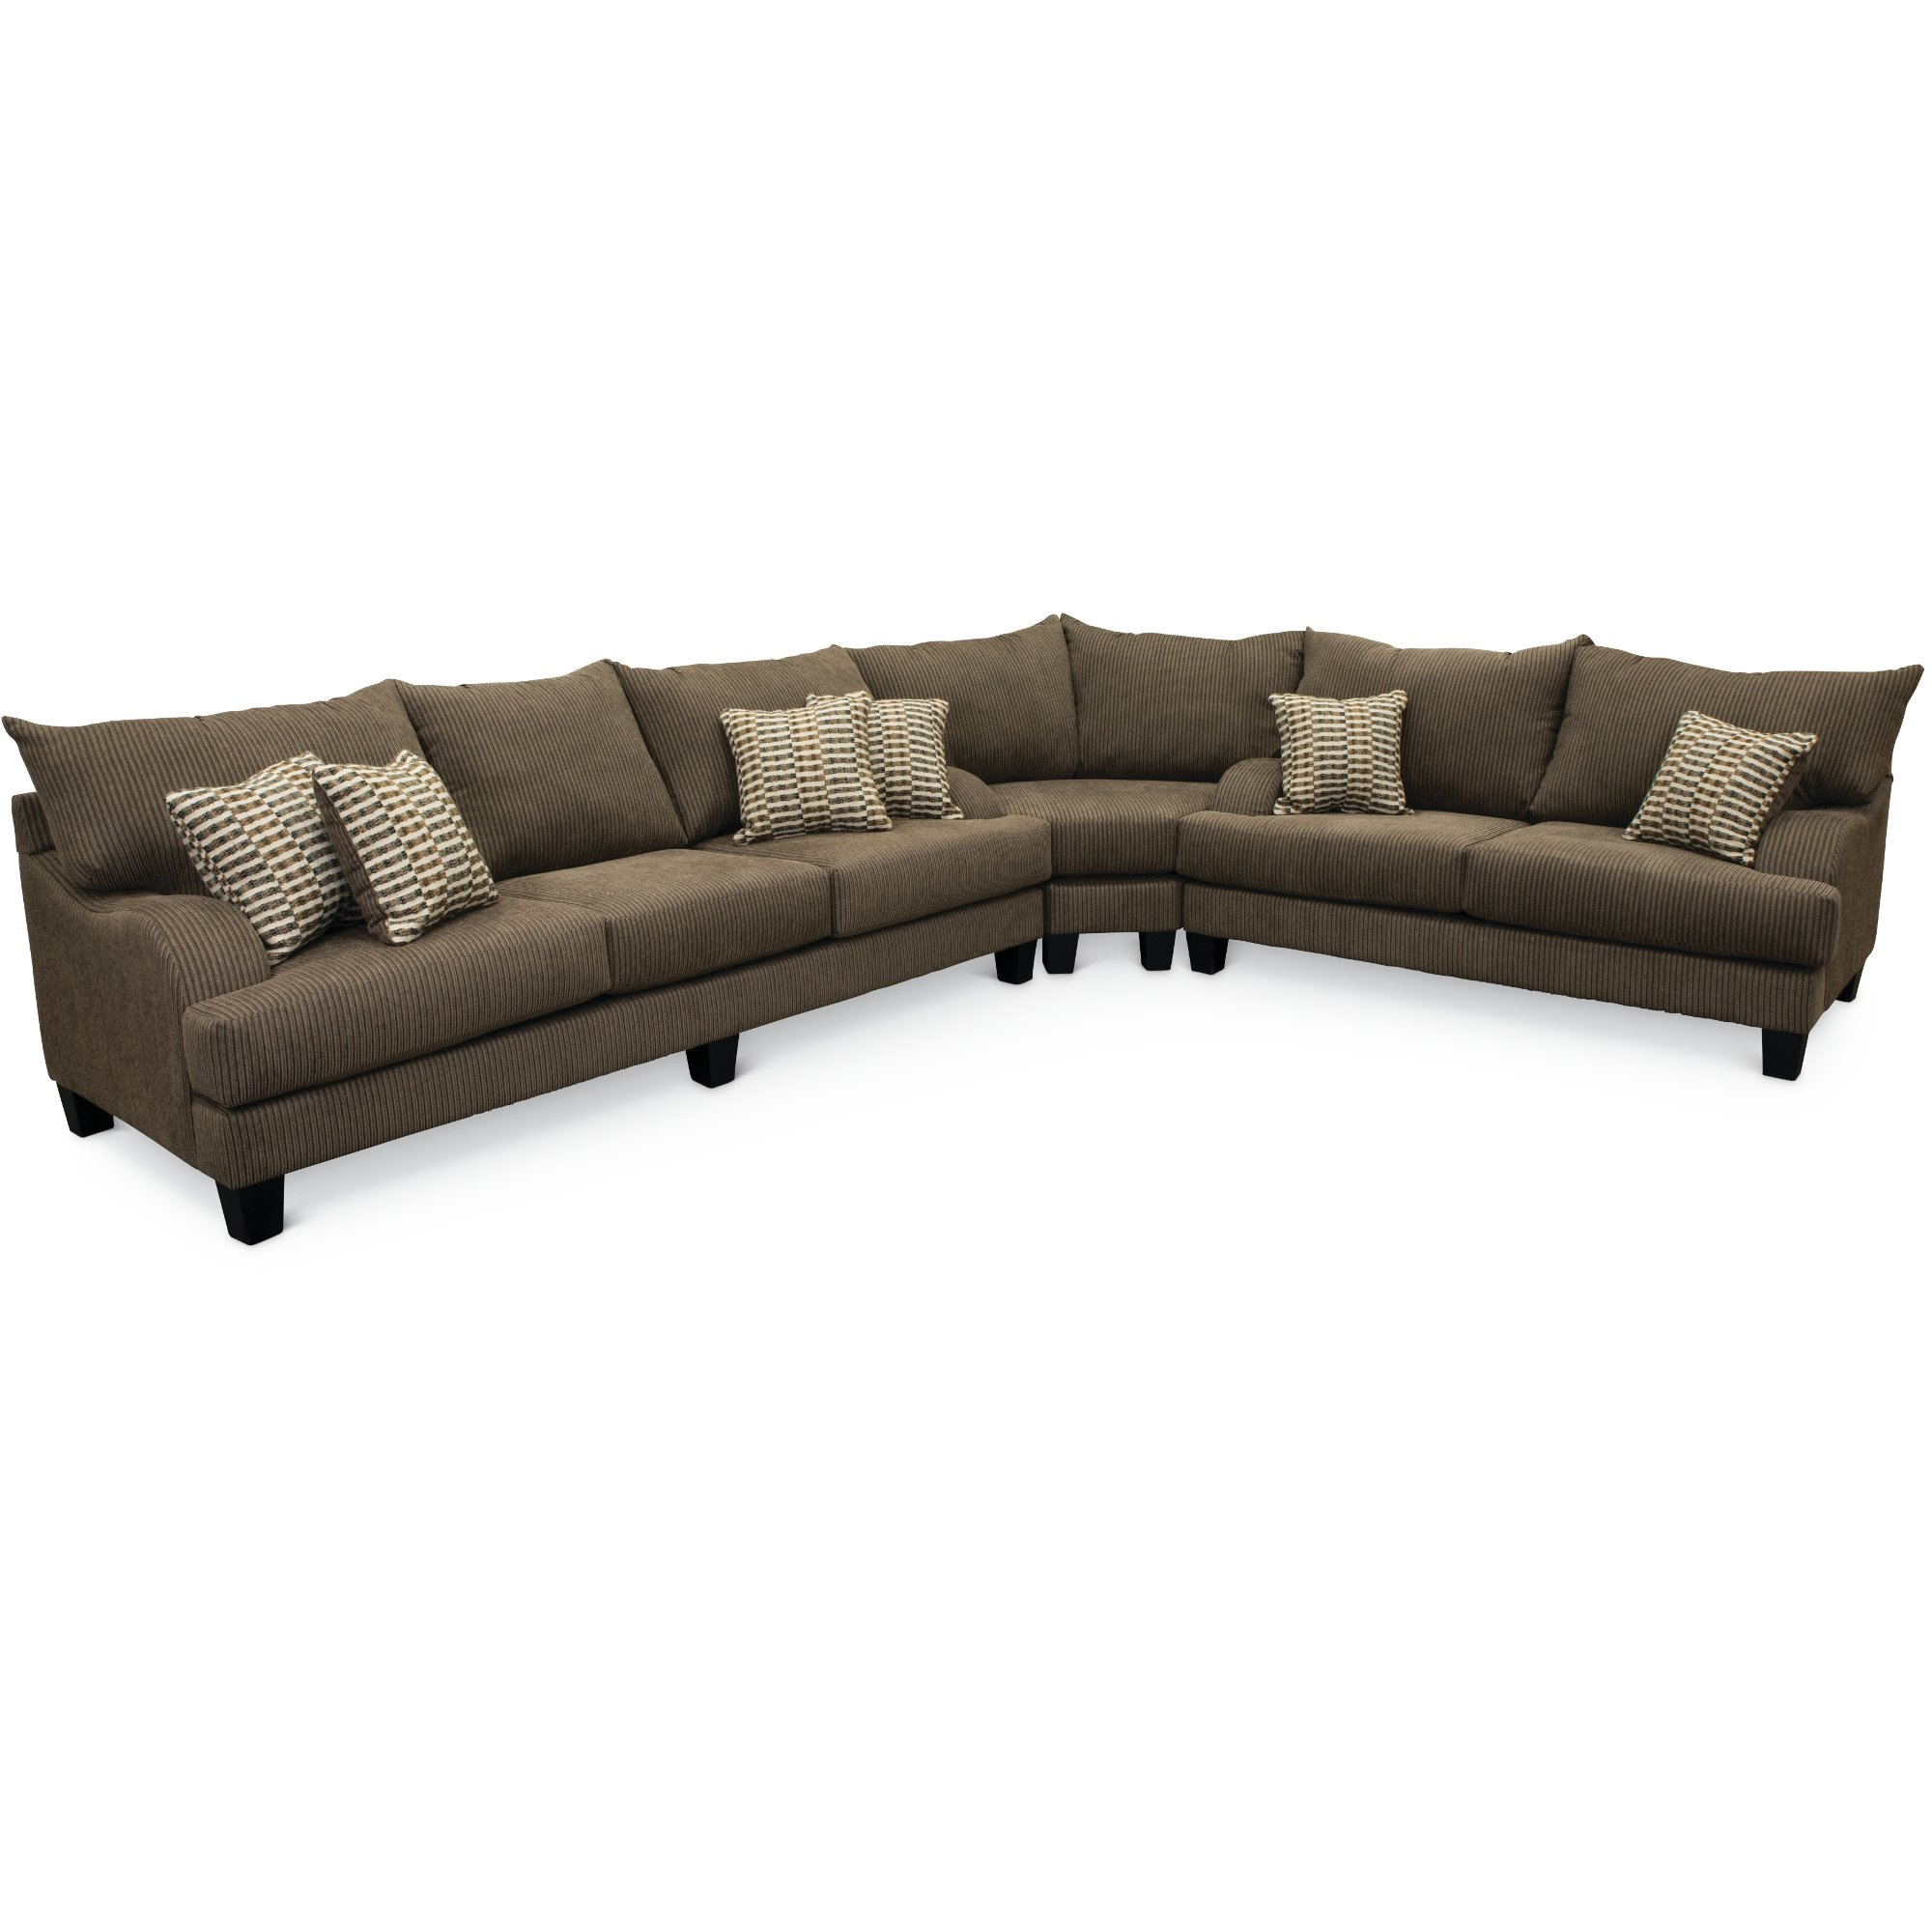 Contemporary Dark Gray 3 Piece Sectional Sofa - Laguna